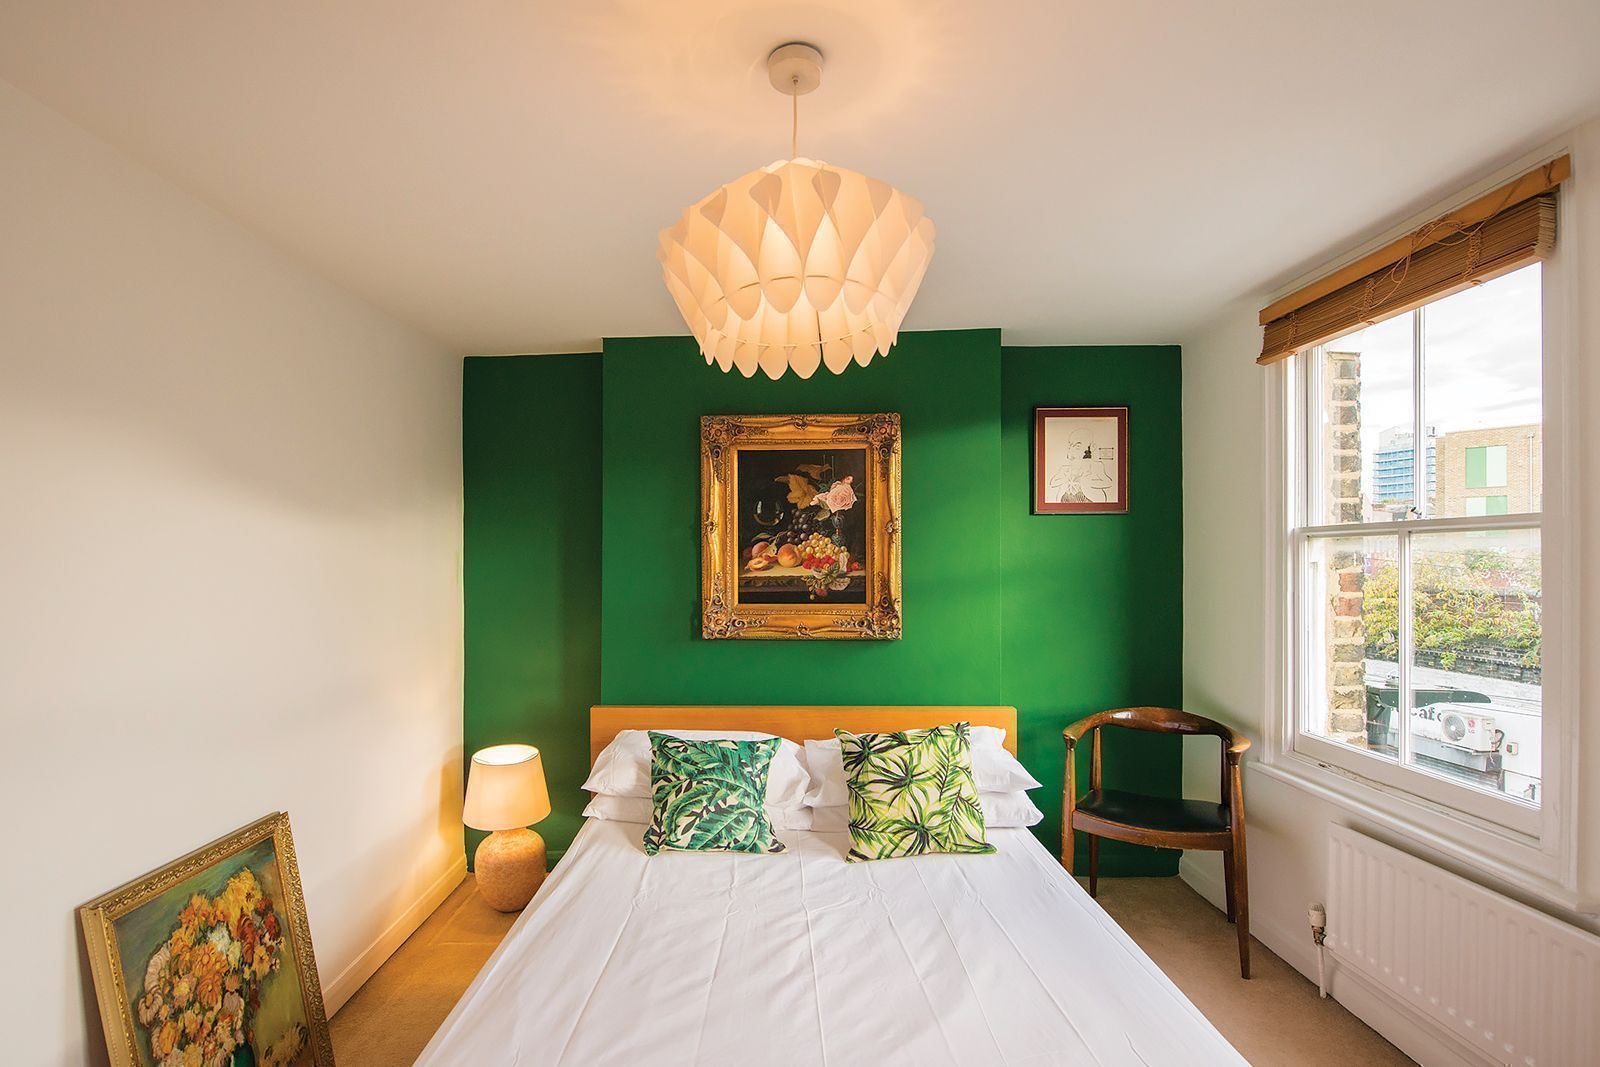 Clapham Apartment London England Vacation Homes For Rent